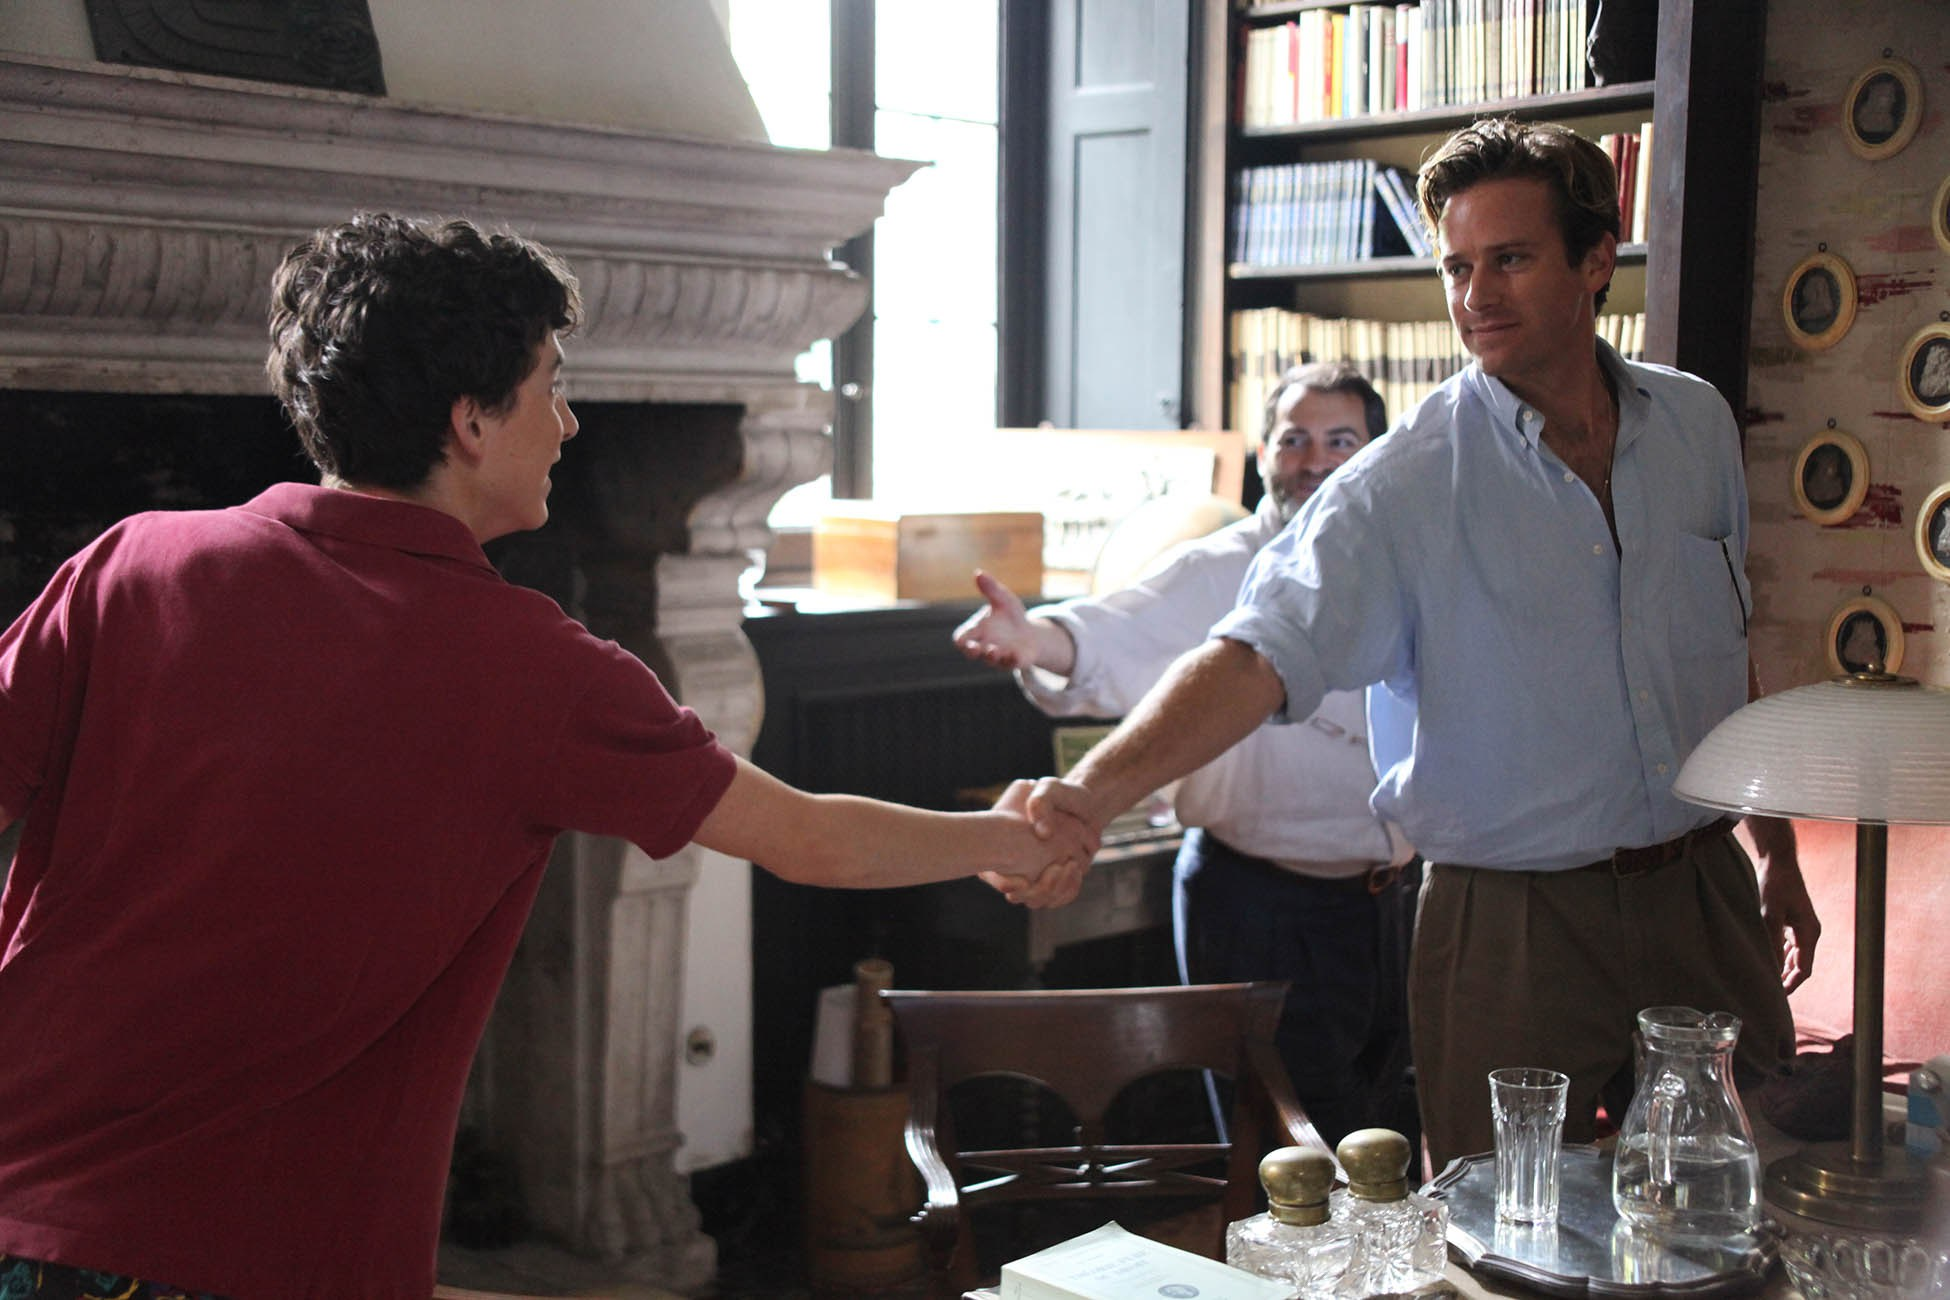 Elio (Timothée Chalamet) and Oliver (Armie Hammer) meet for the first time.